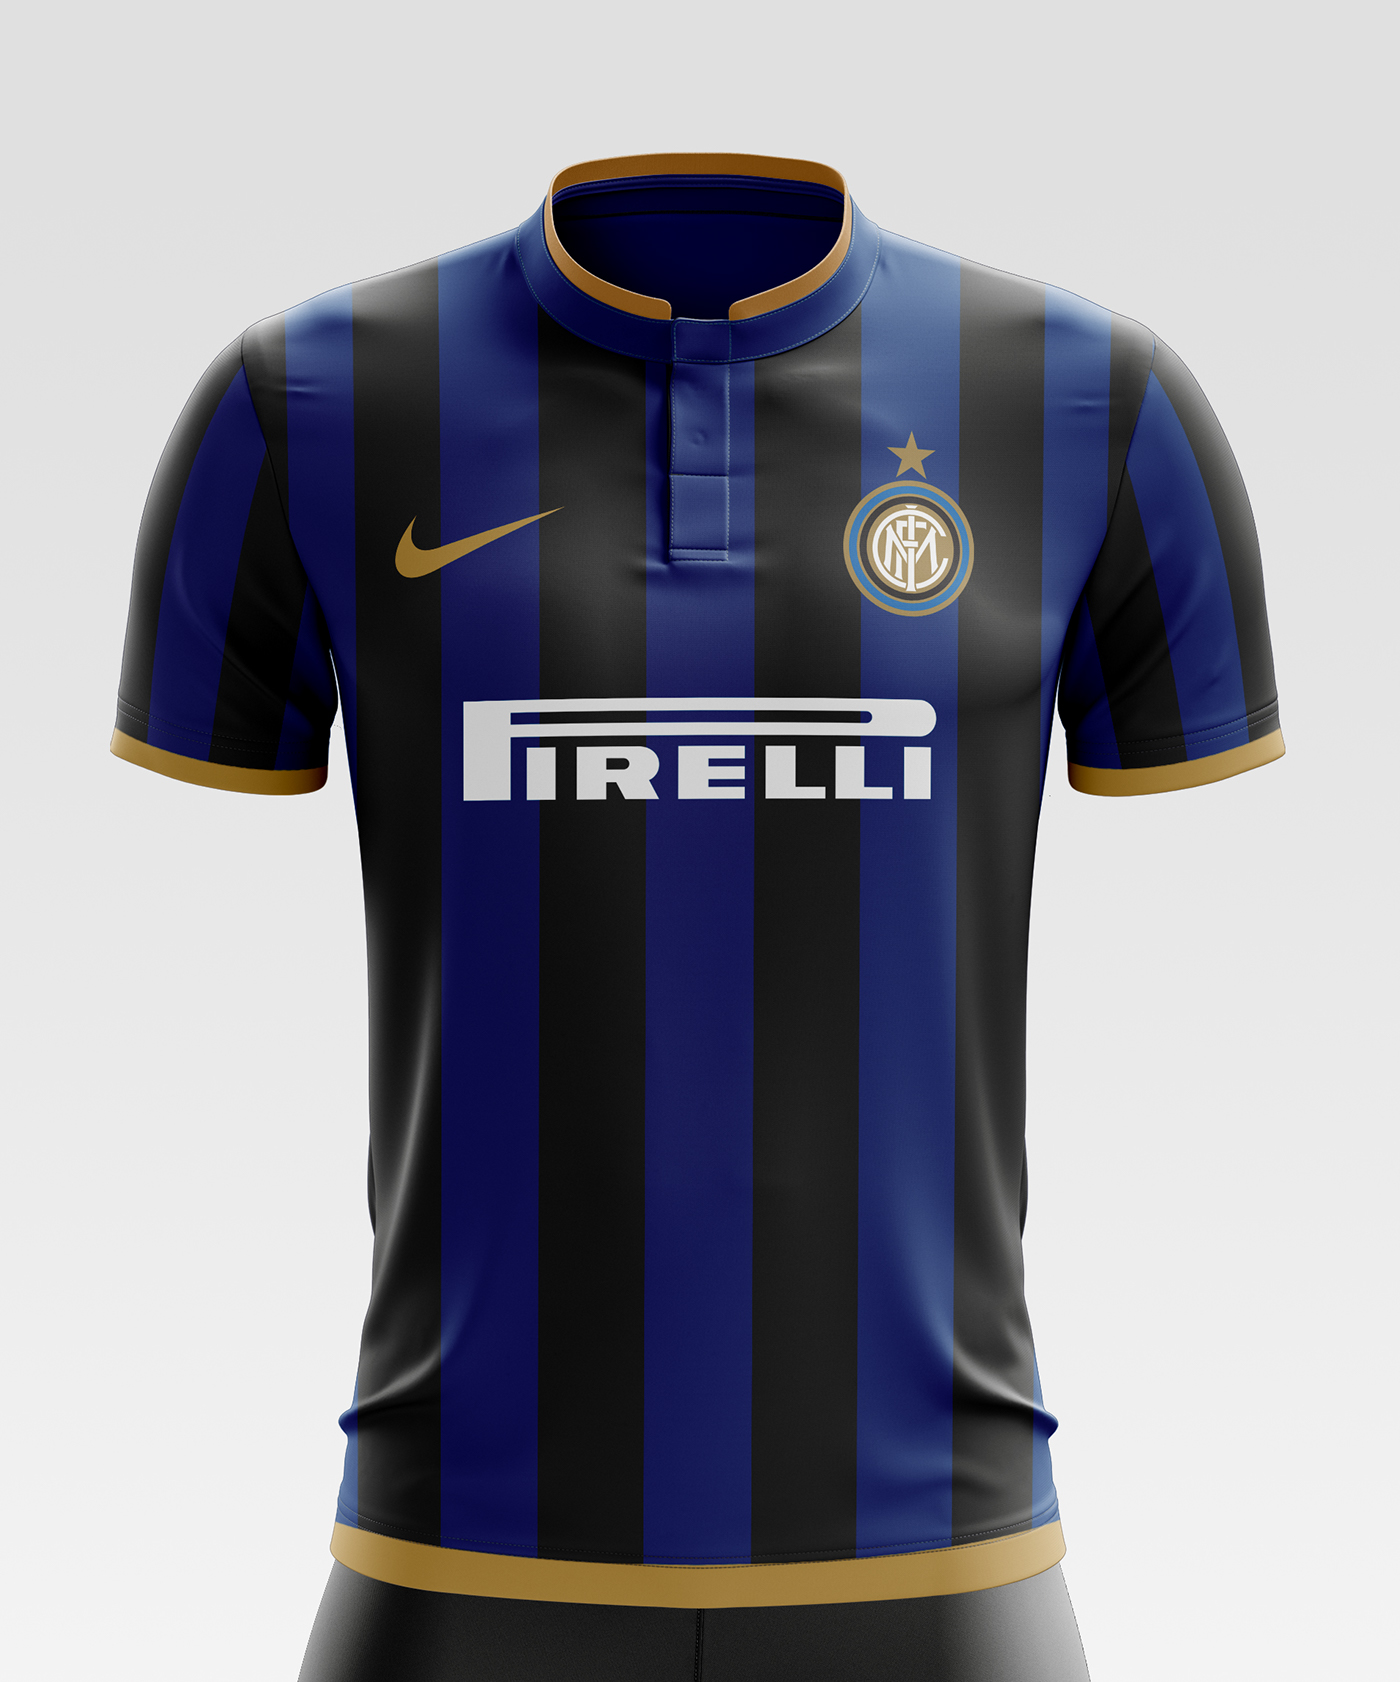 637ab41e023 I designed football kits for FC Internazionale Milano (also know as Inter  Milan) for the upcoming season 17 18. Save to Collection